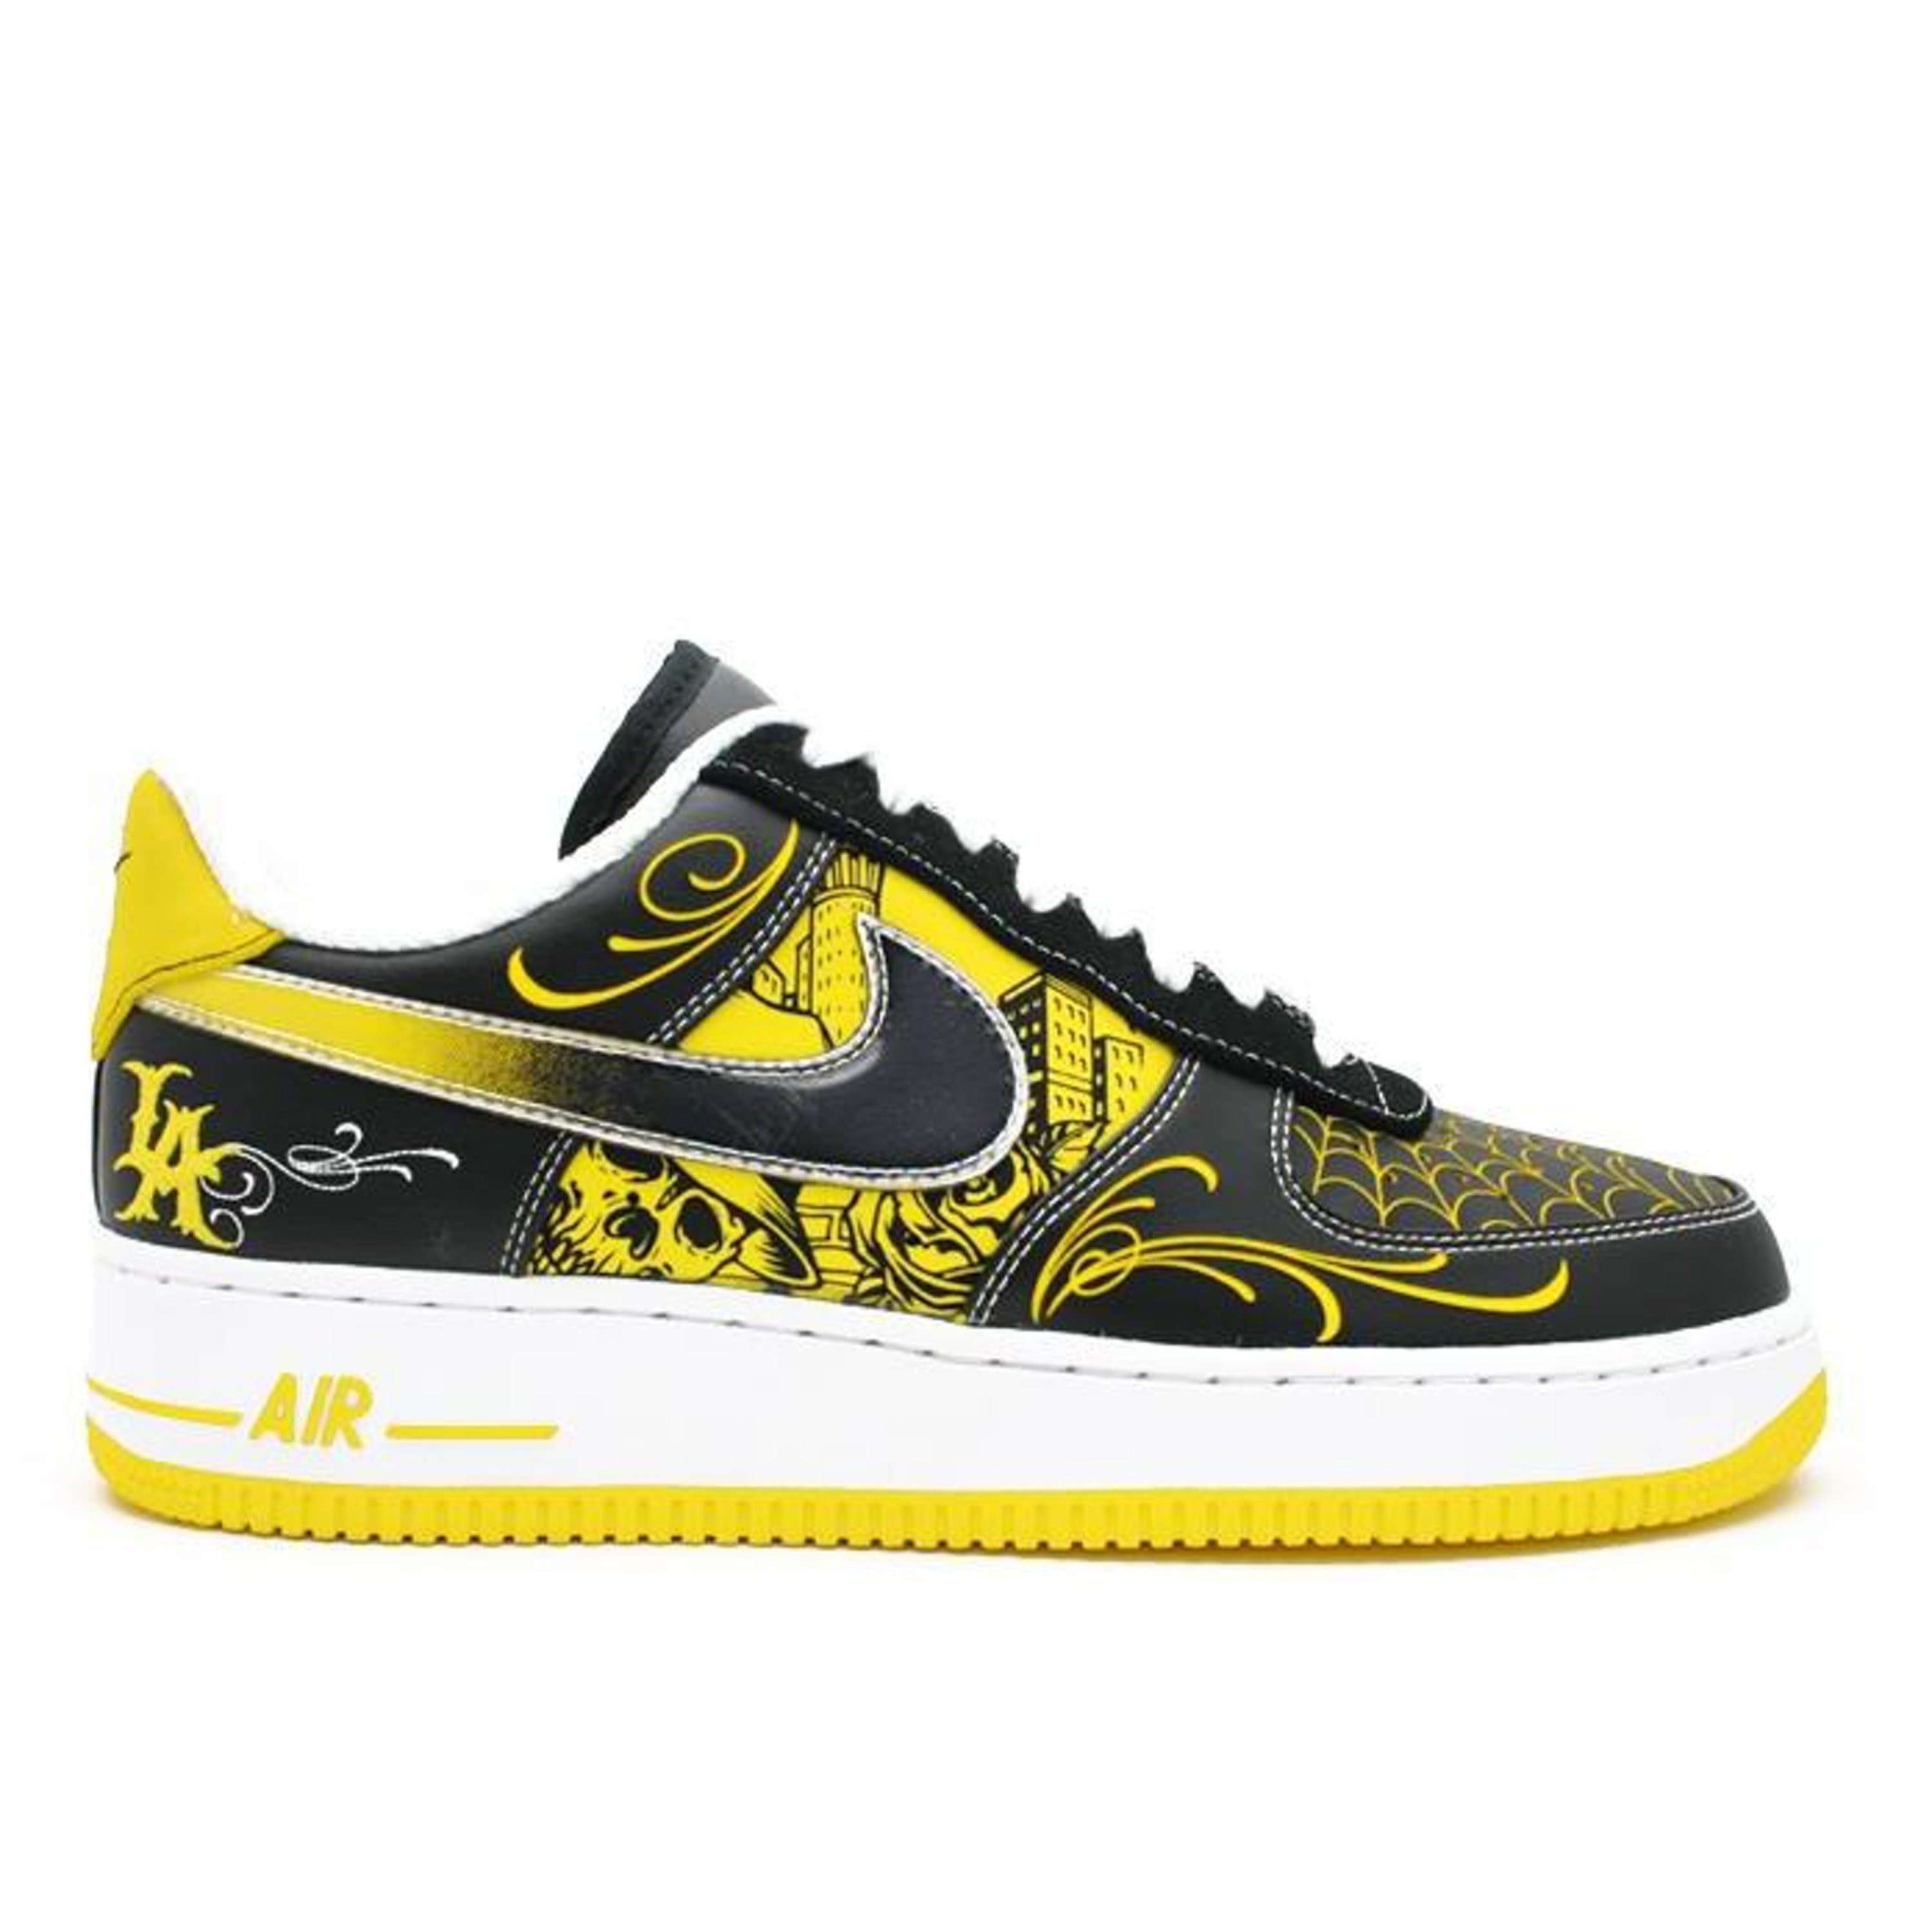 Nike Air Force 1 Low Mr. Cartoon Livestrong (378126-071)